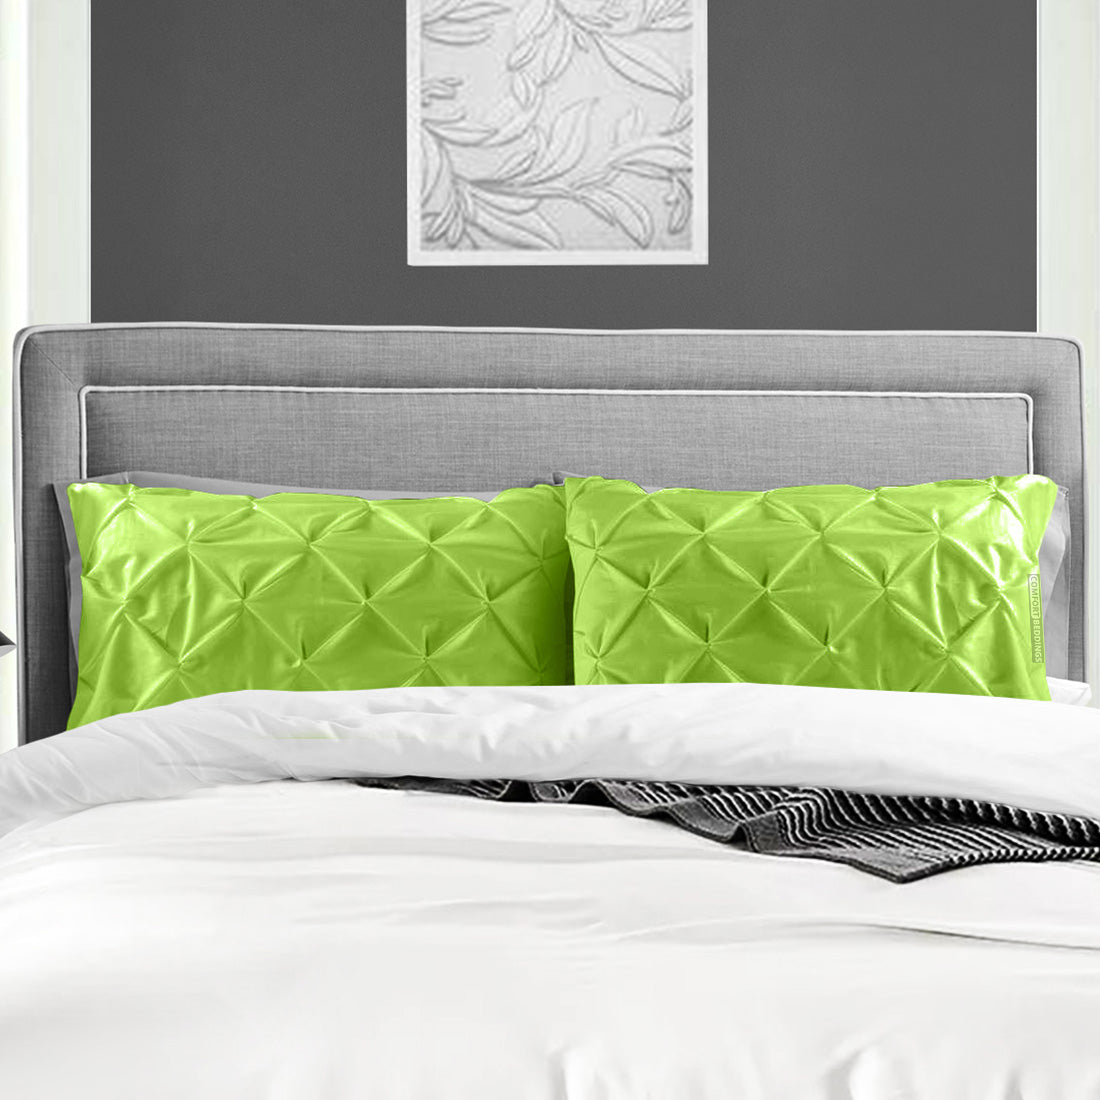 Most selling parrot green pinch pillow cases